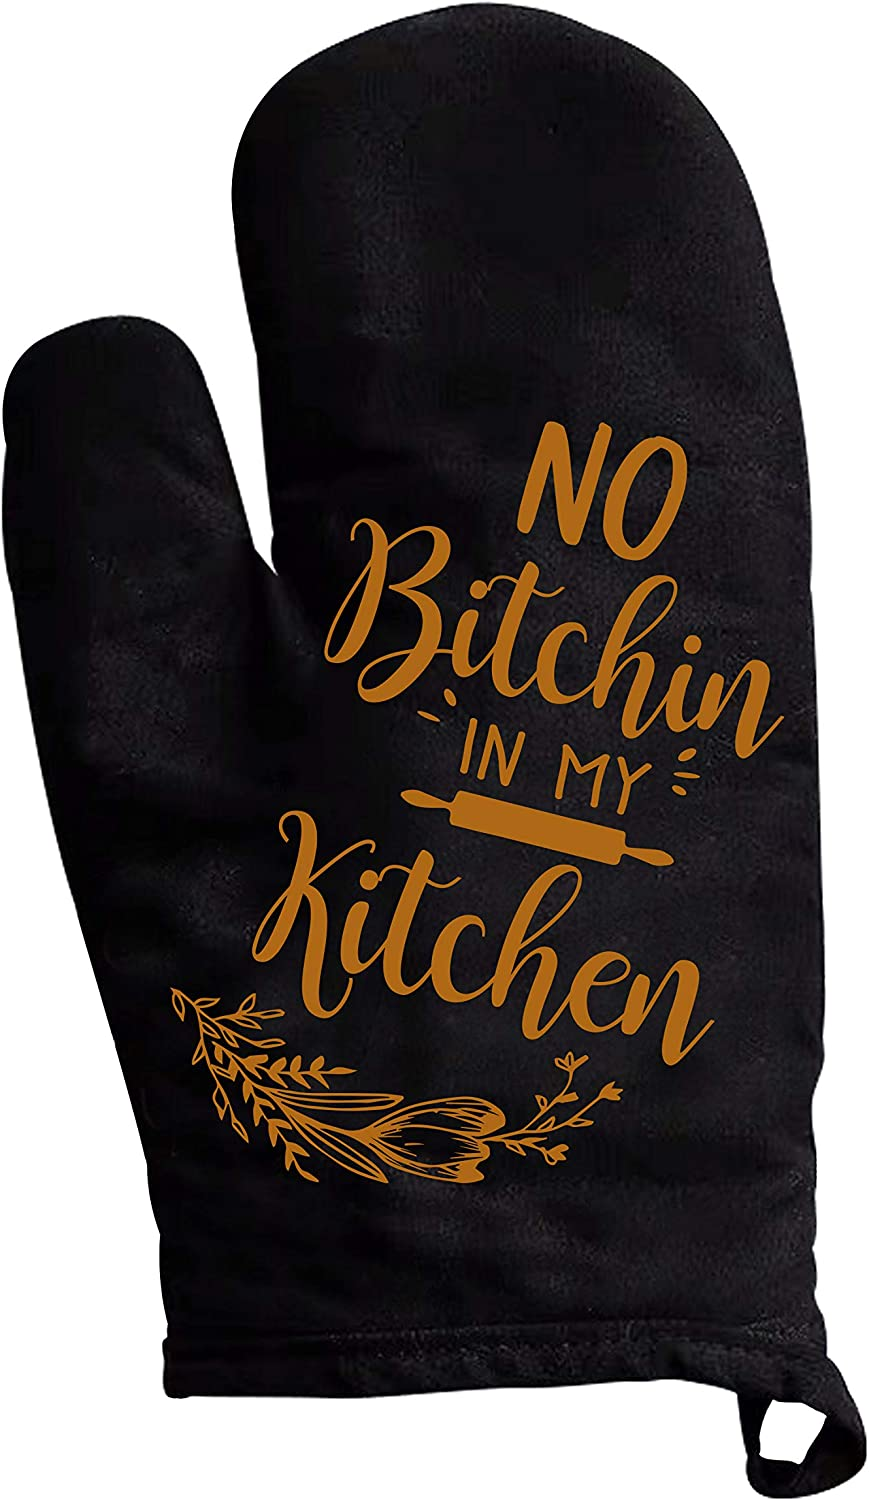 YouFangworkshop Funny Kitchen Oven Mitts 100% Cotton Cooking Oven mitt for Baking, Grilling, Frying Heat Premium Durable Resistant Kitchen BBQ Gloves